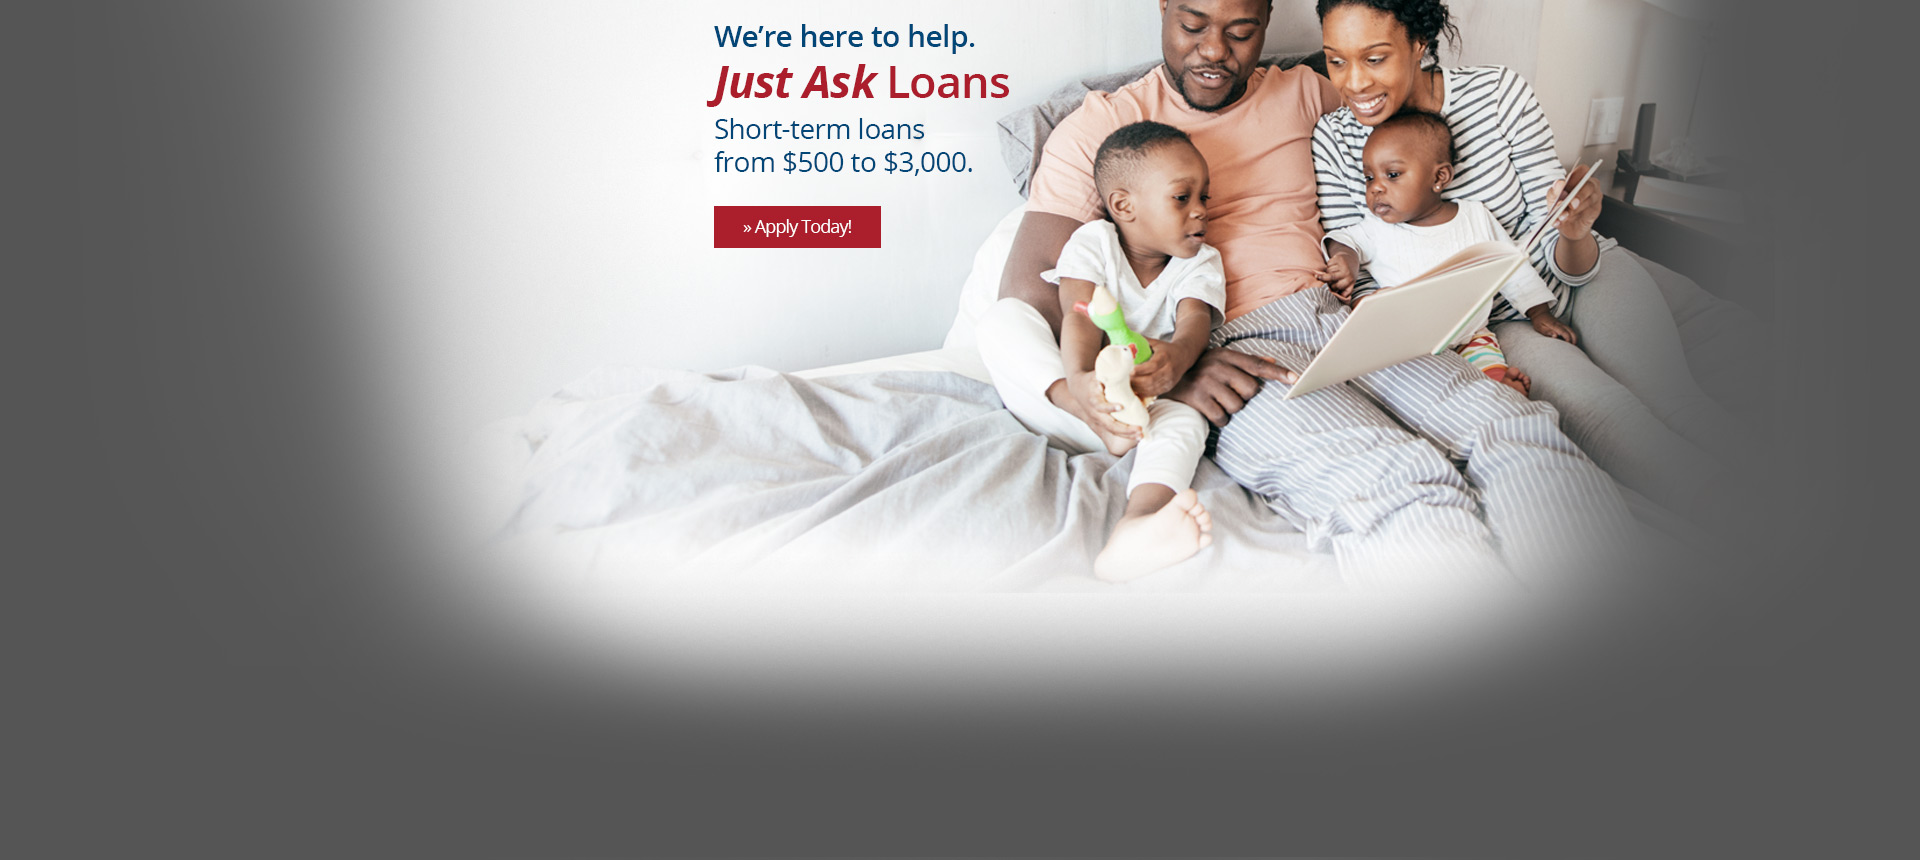 Just Ask Loans